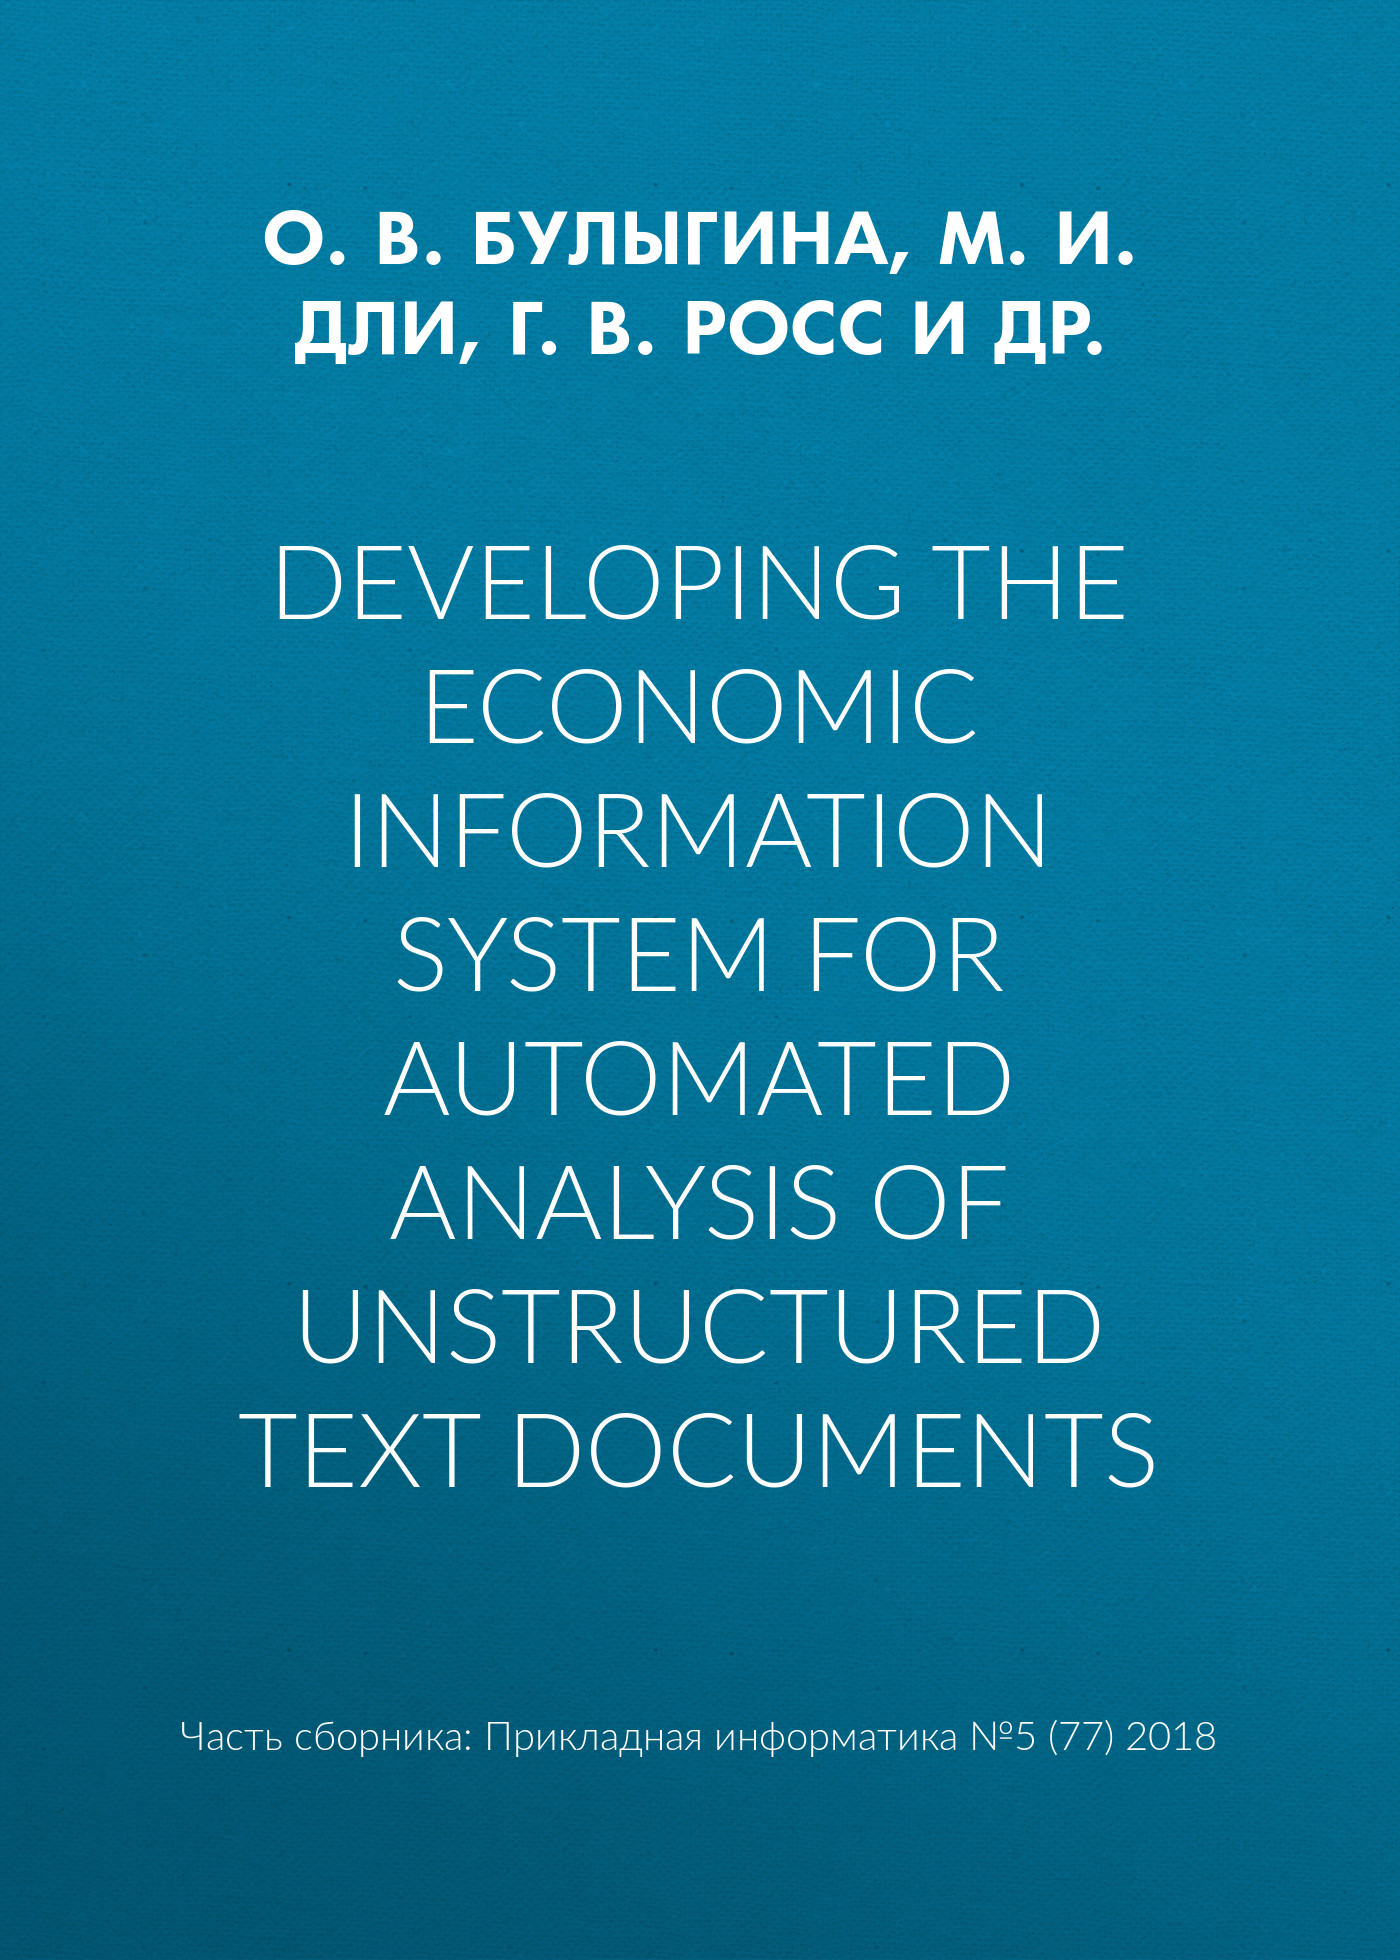 М. И. Дли Developing the economic information system for automated analysis of unstructured text documents а а гольдман стратегия и тактика анализа текста the strategy and tactics of text analysis учебное пособие